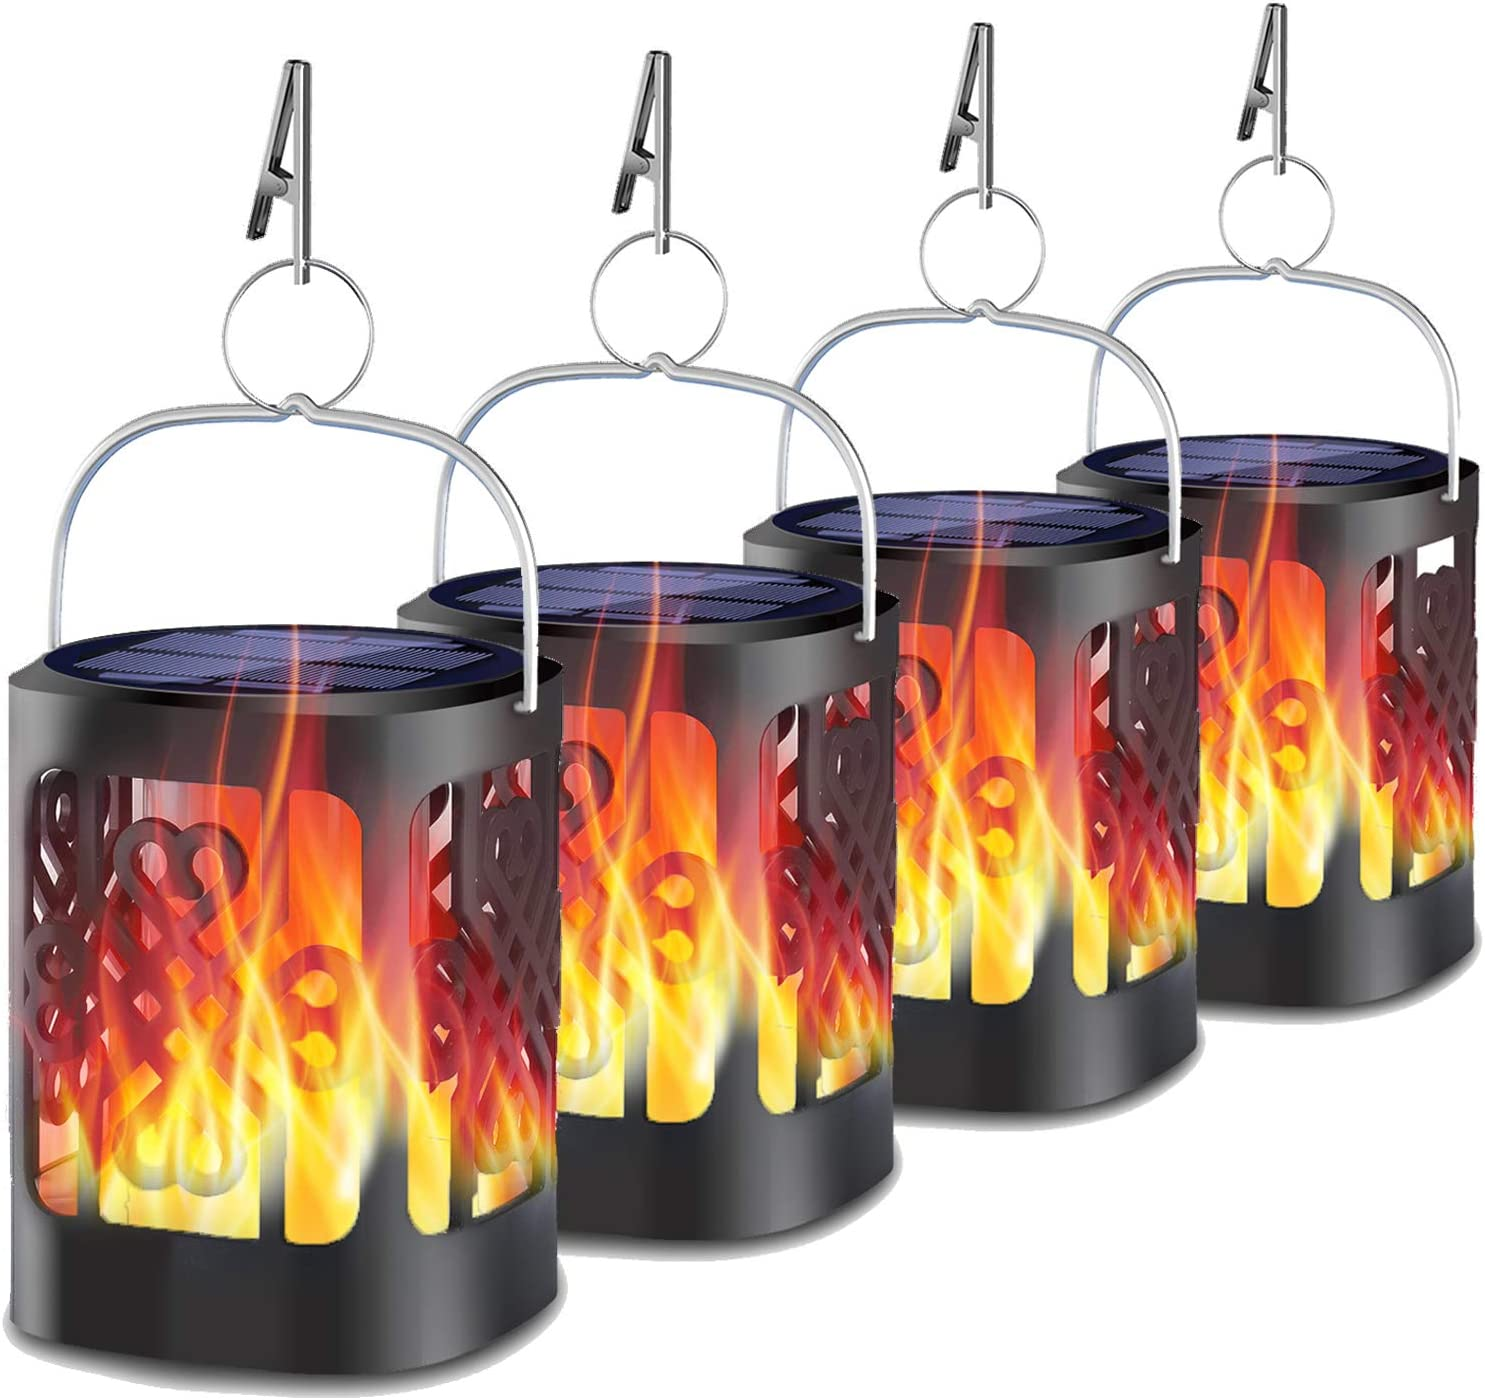 Today's only Upgraded Solar Lanterns Outdoor YoungPower Flam Dancing Hanging Max 67% OFF